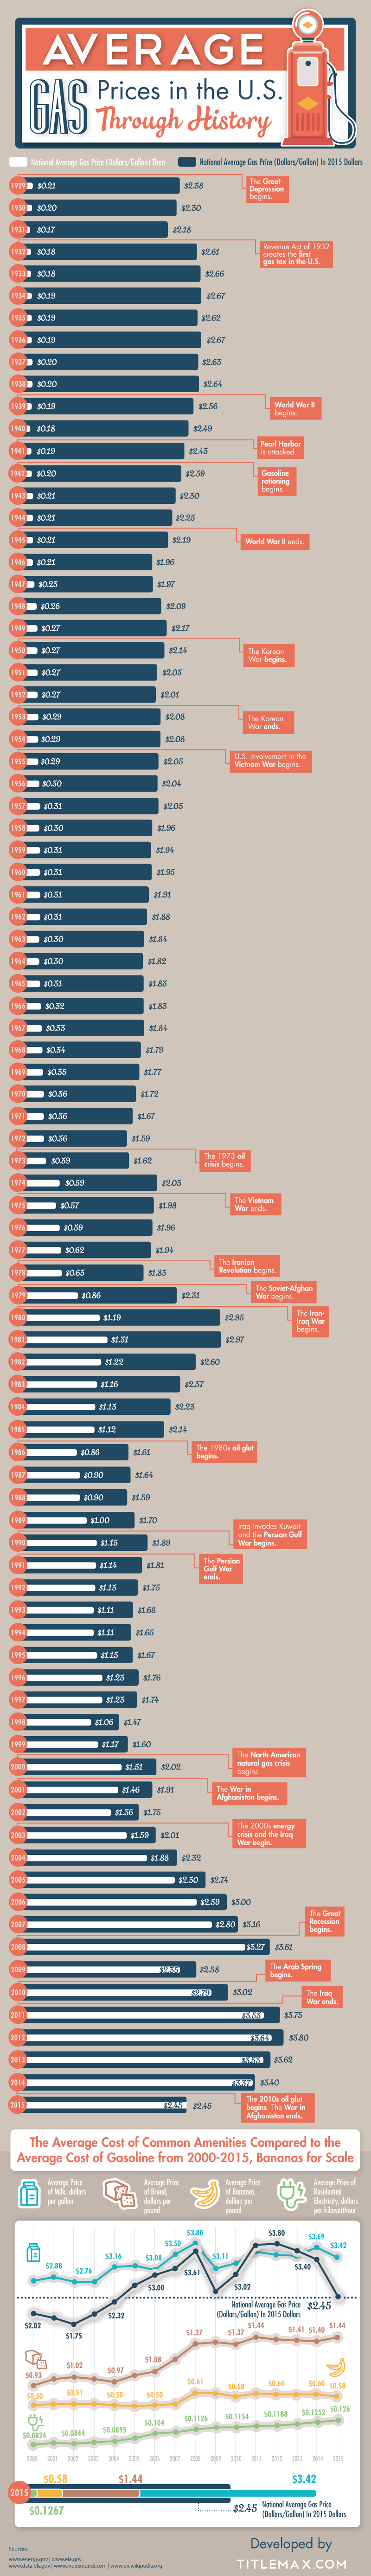 Average Gas Prices In U.S Through History